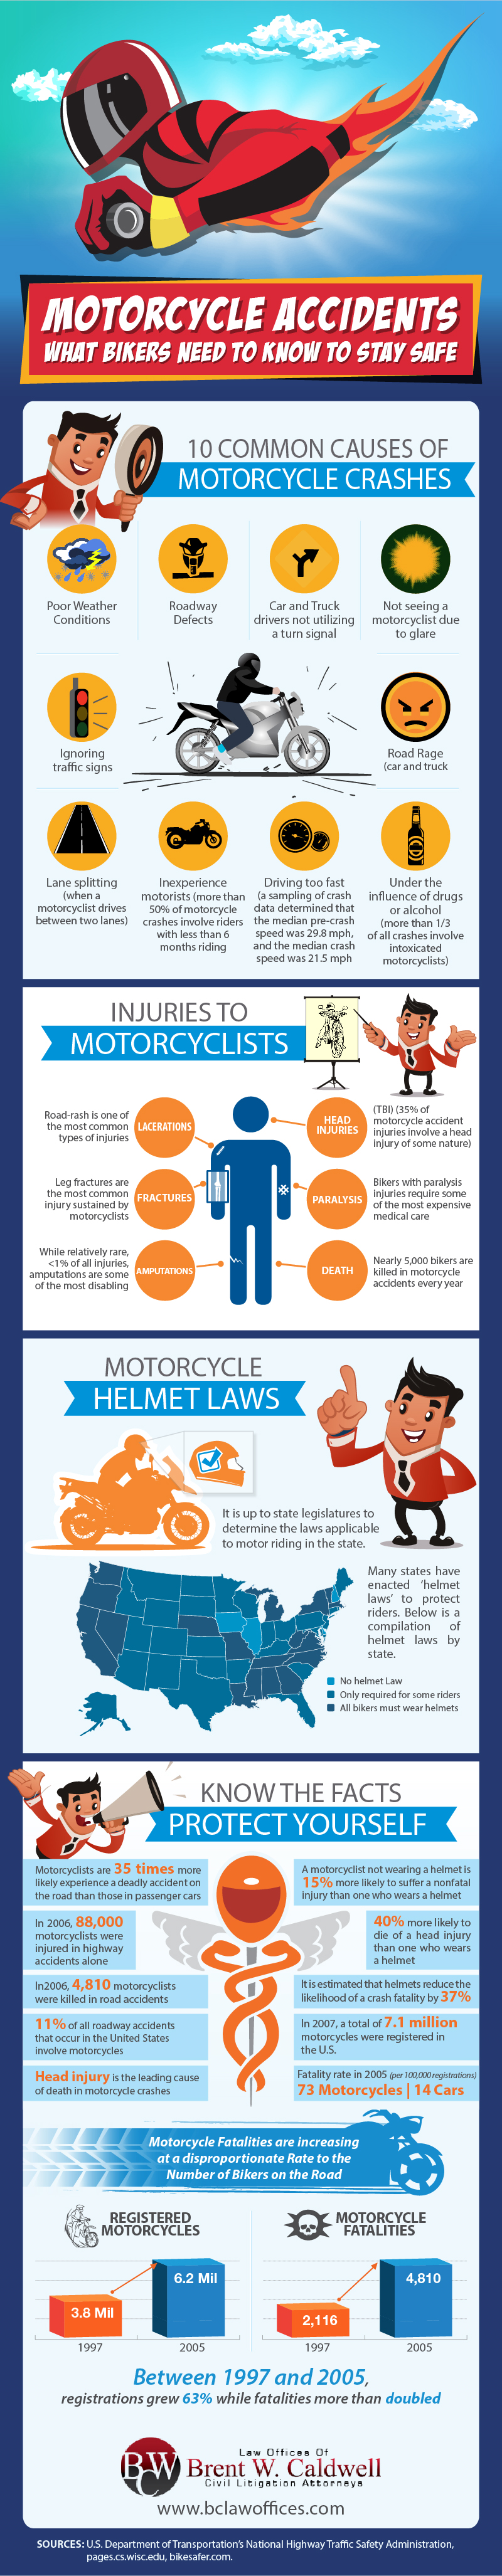 Motorcycle Accidents - What Bikers Need to Know to Stay Safe